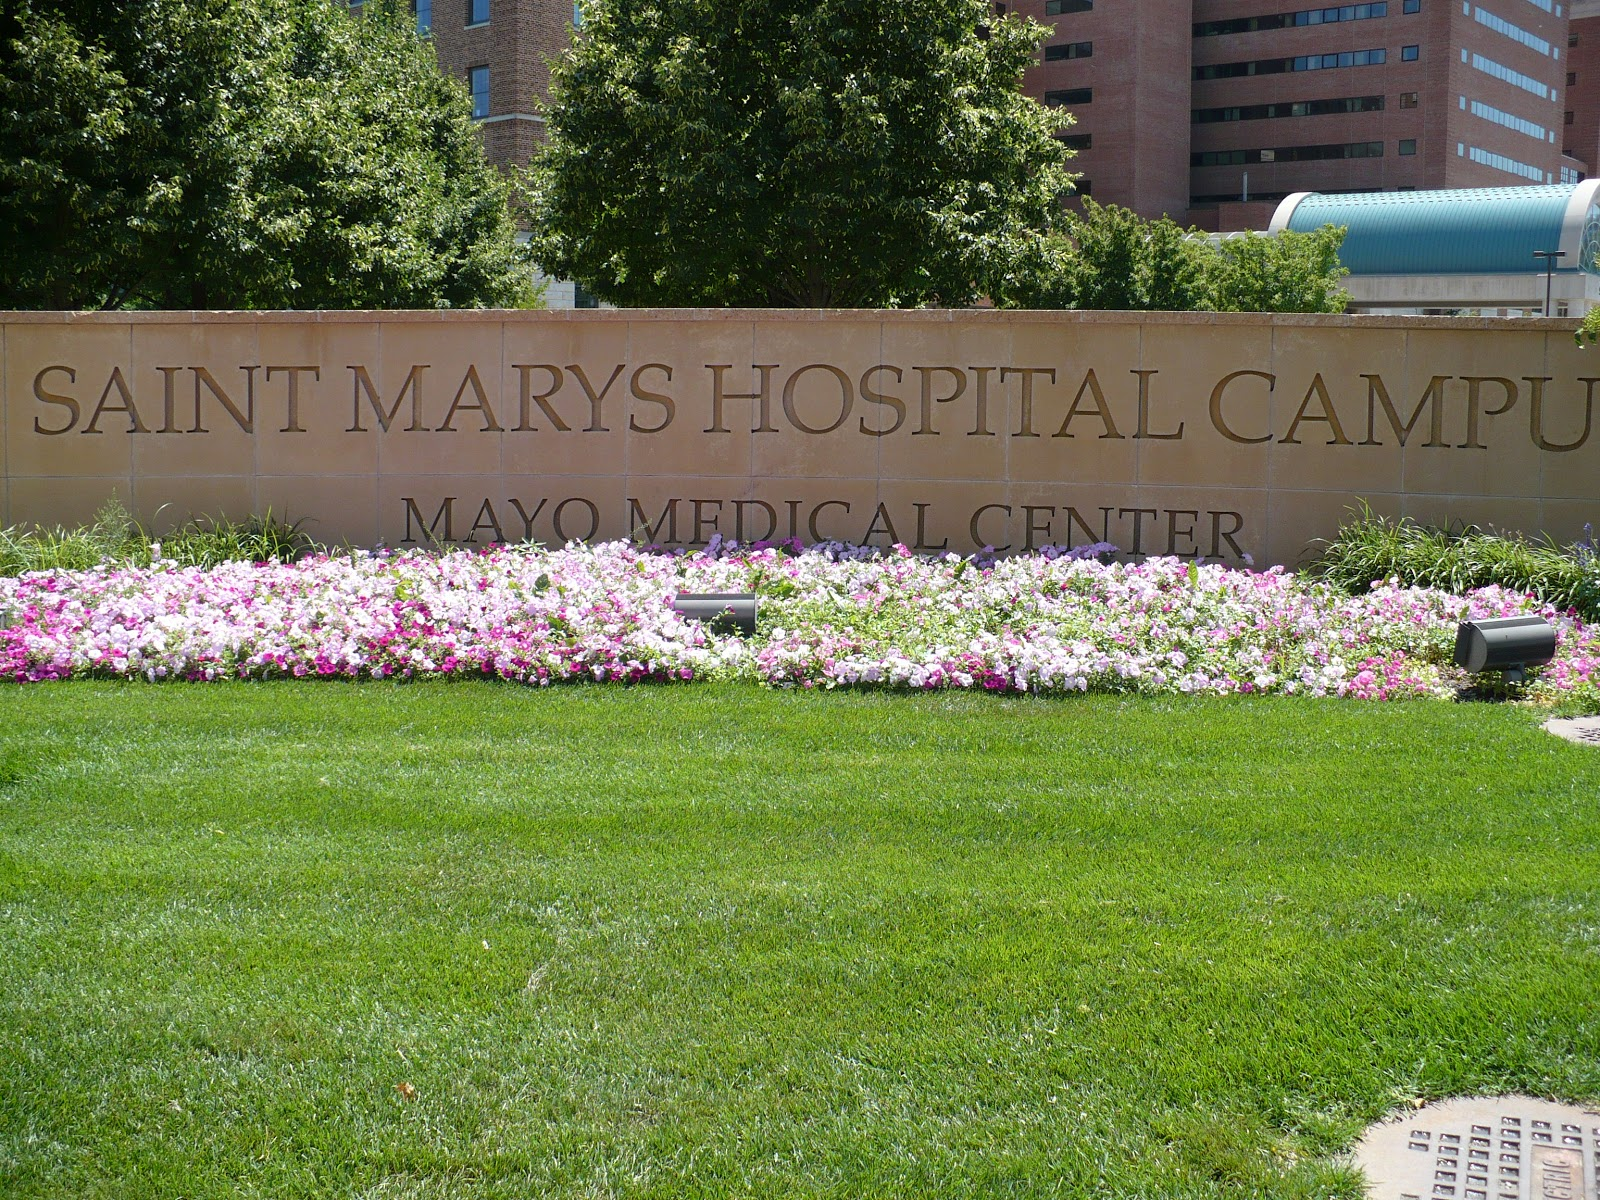 Superior My First Trip To The Mayo Clinic Was In May Of 1999 When I Had My Fourth  Open Heart Surgery At St. Maryu0027s Hospital. Four Years Later, Faith Stayed  At St. ...